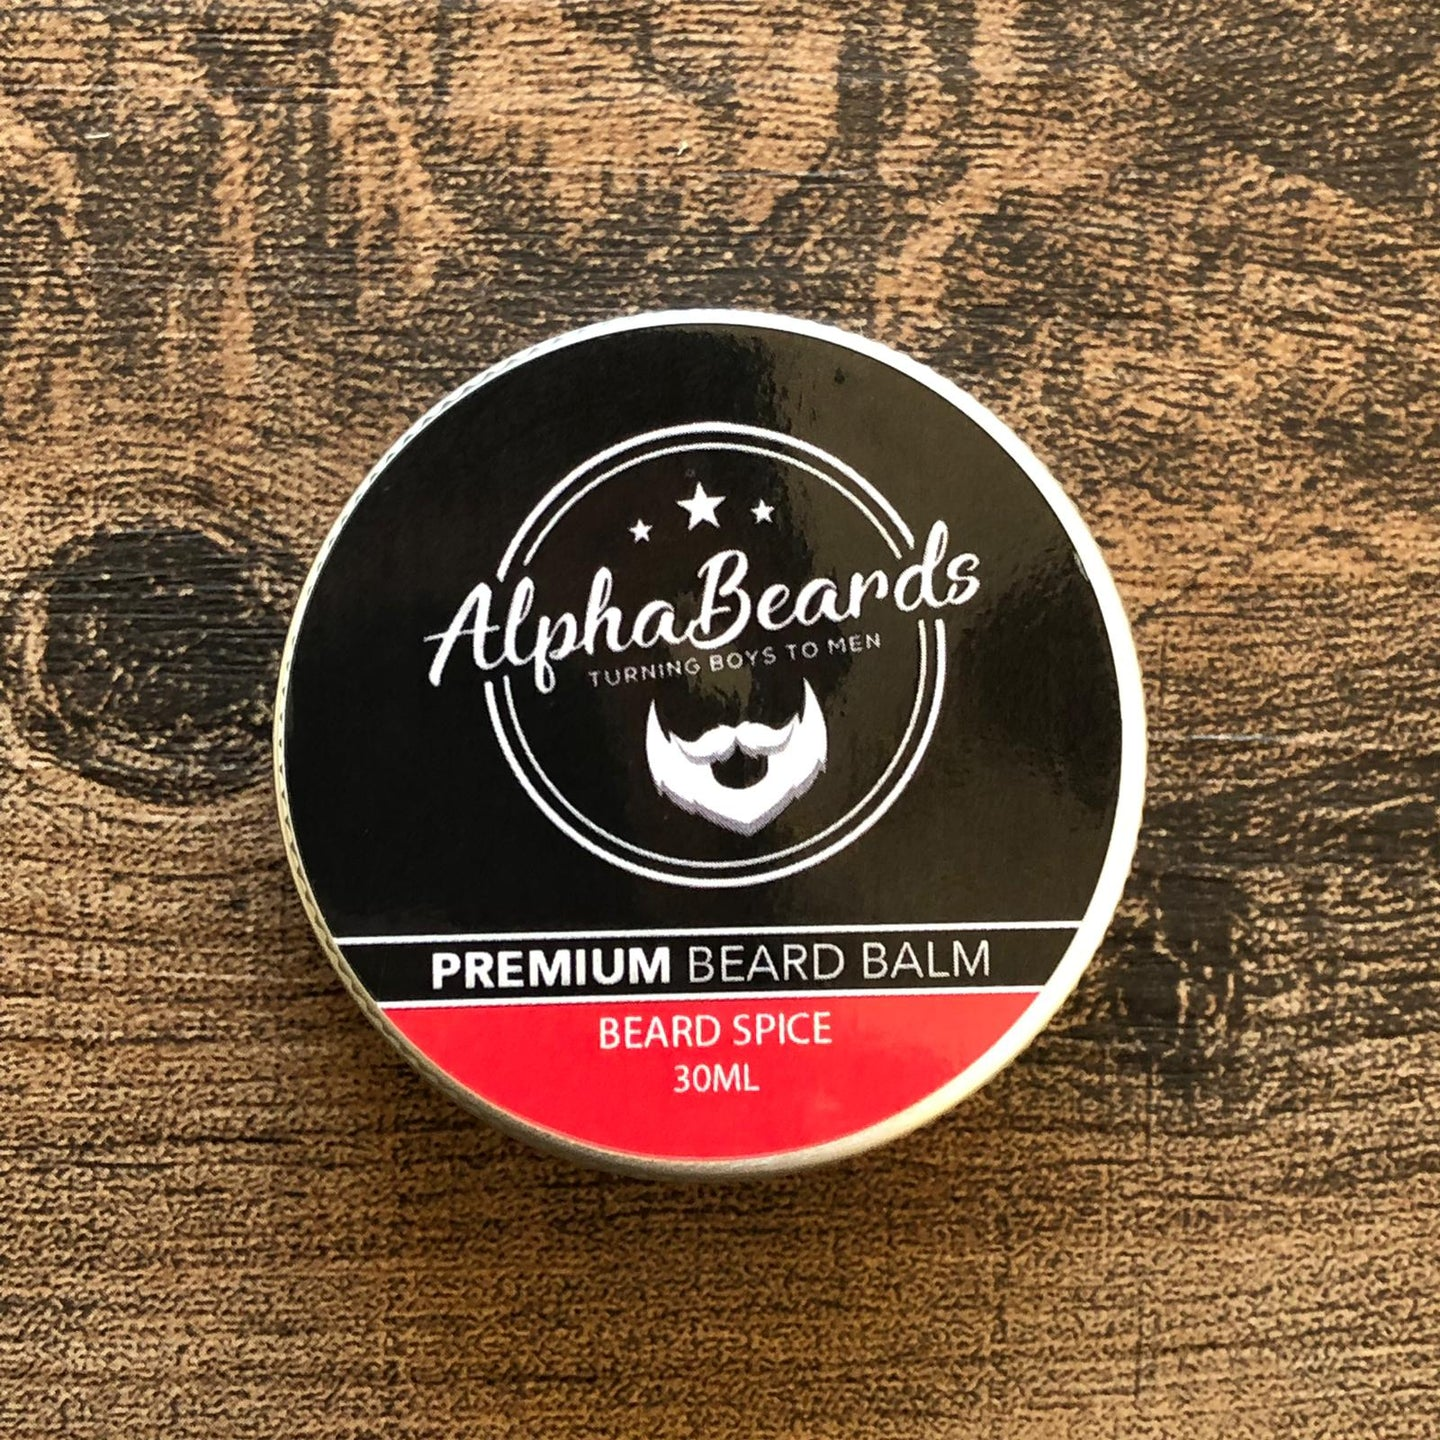 Alpha Beards Premium Beard Balm Beard Spice 30ml / 1fl oz